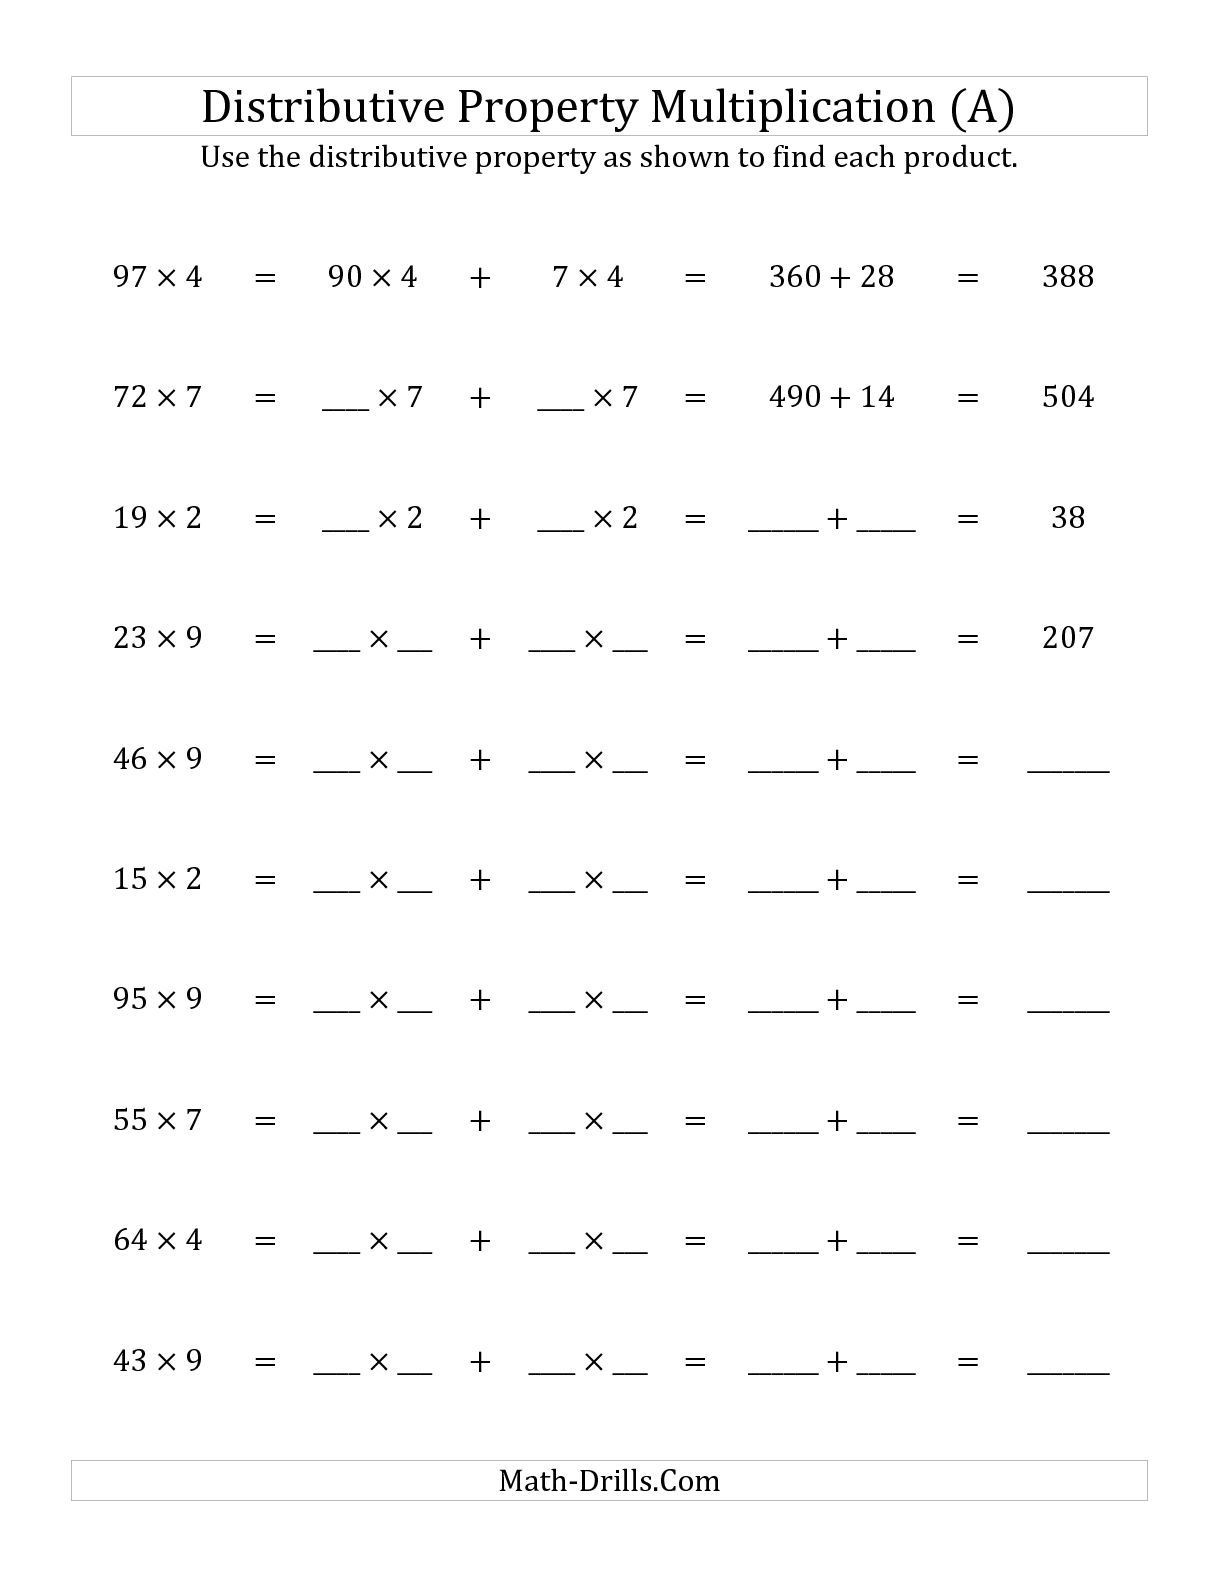 Factoring Distributive Property Worksheet the Multiply 2 Digit by 1 Digit Numbers Using the